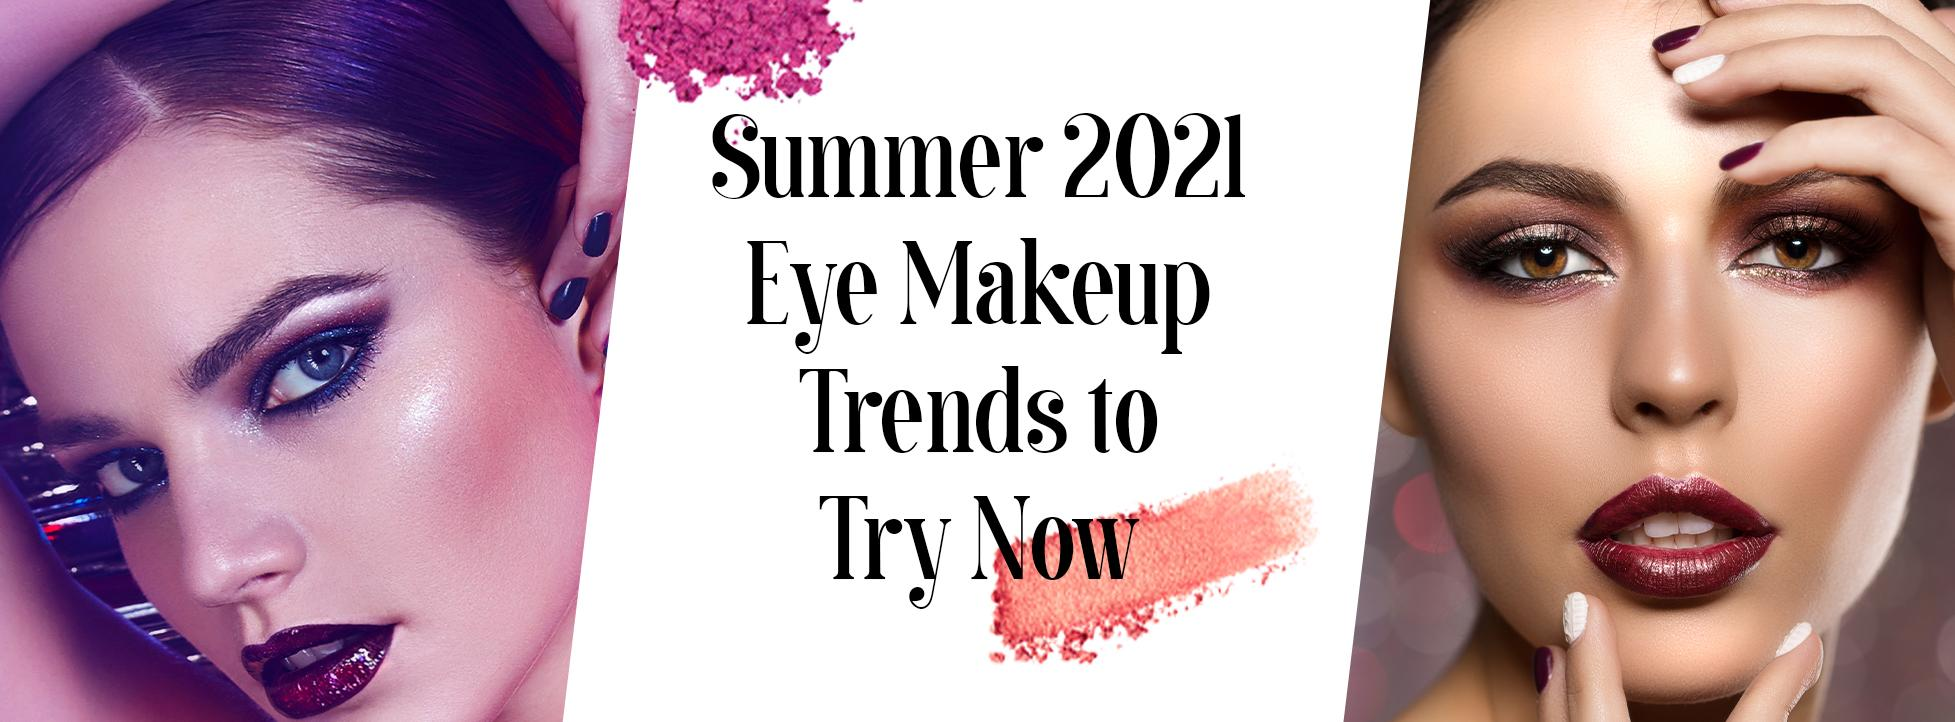 Summer Eye Makeup Looks to Set You Apart From the Crowd